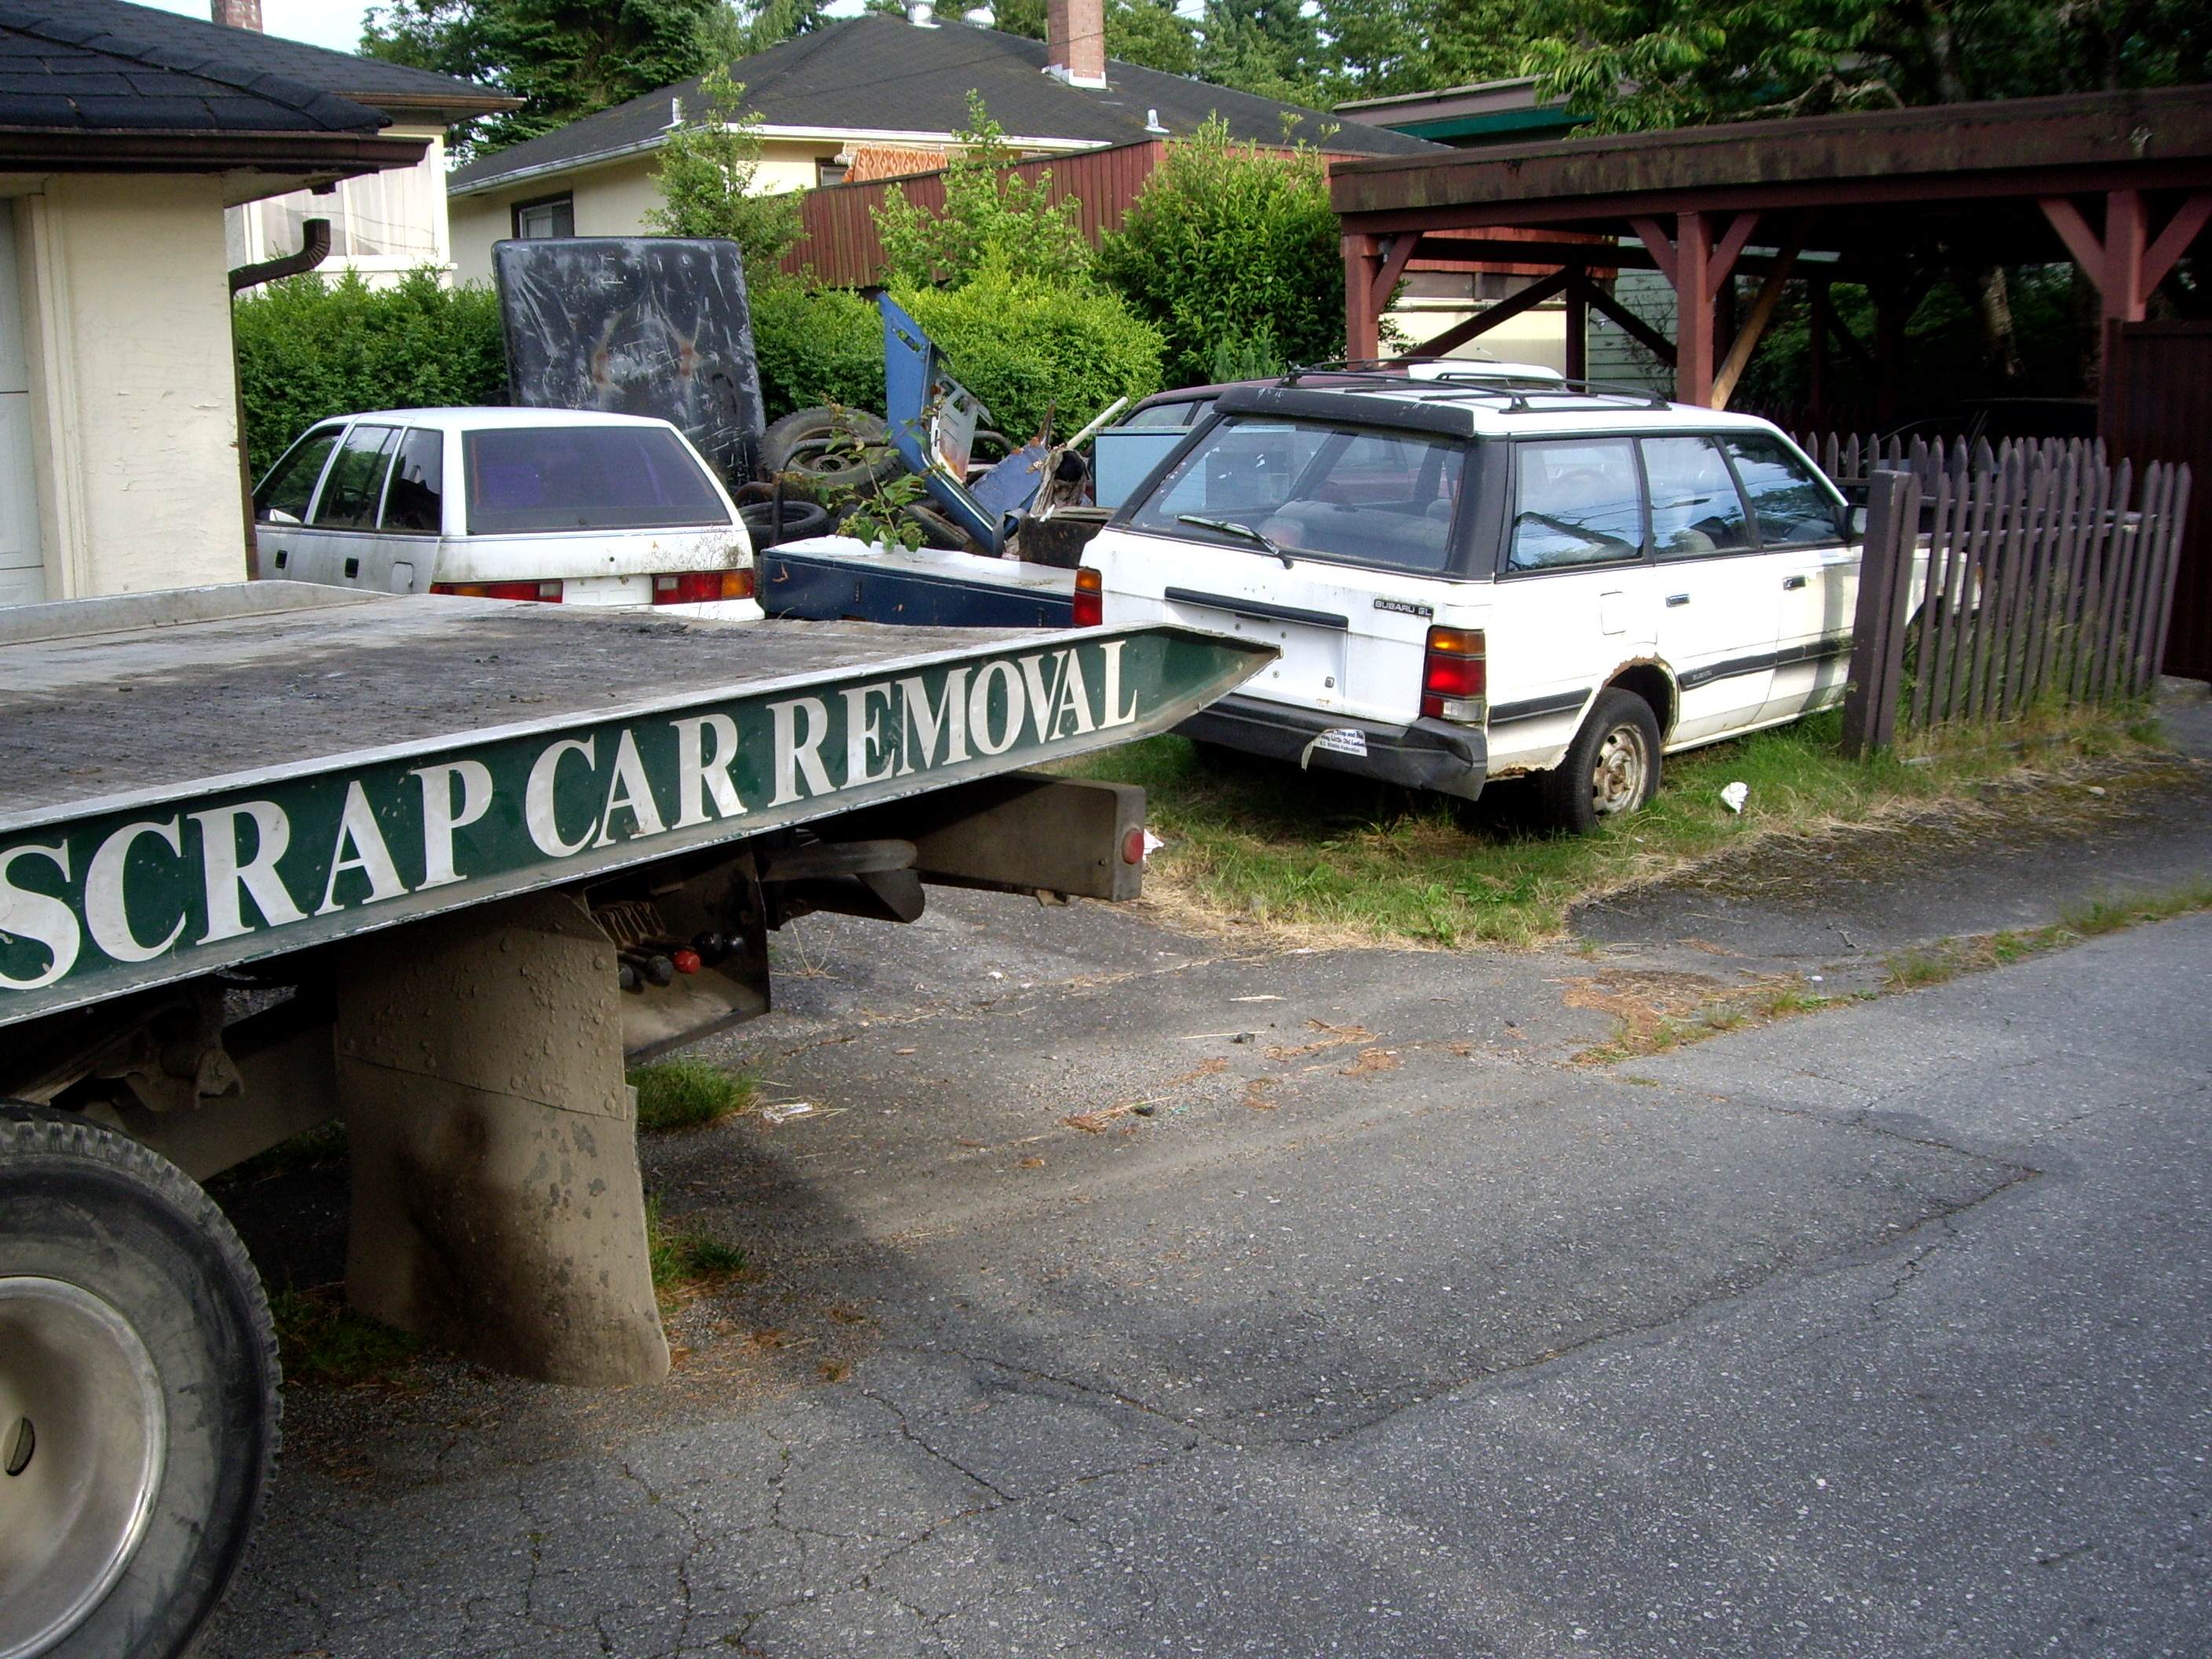 Junk Car Removal Coquitlam\' Articles at Scrap 4 Cash